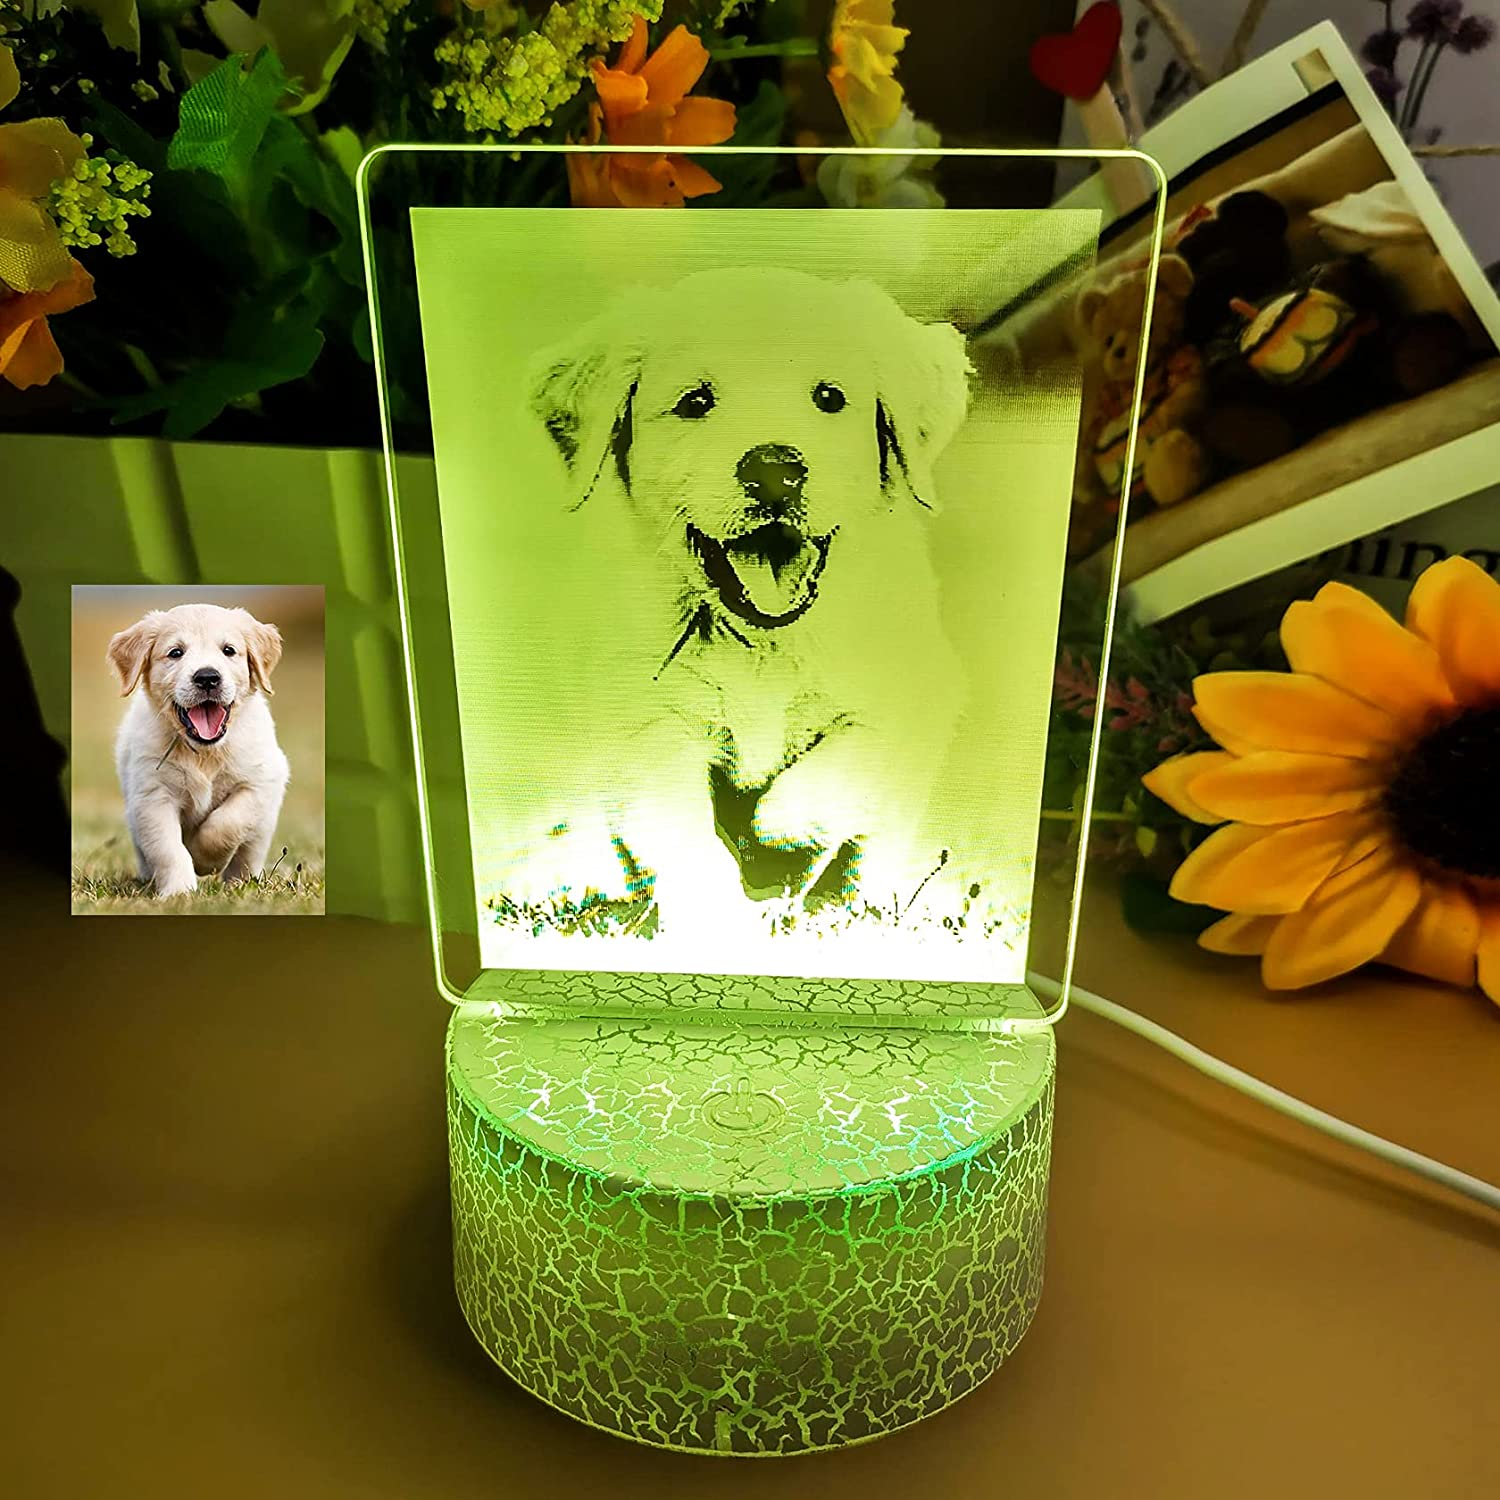 Sale price Personalized 7 Color Photo Frame Lamp Kids Base Boy Be super welcome for with Dad